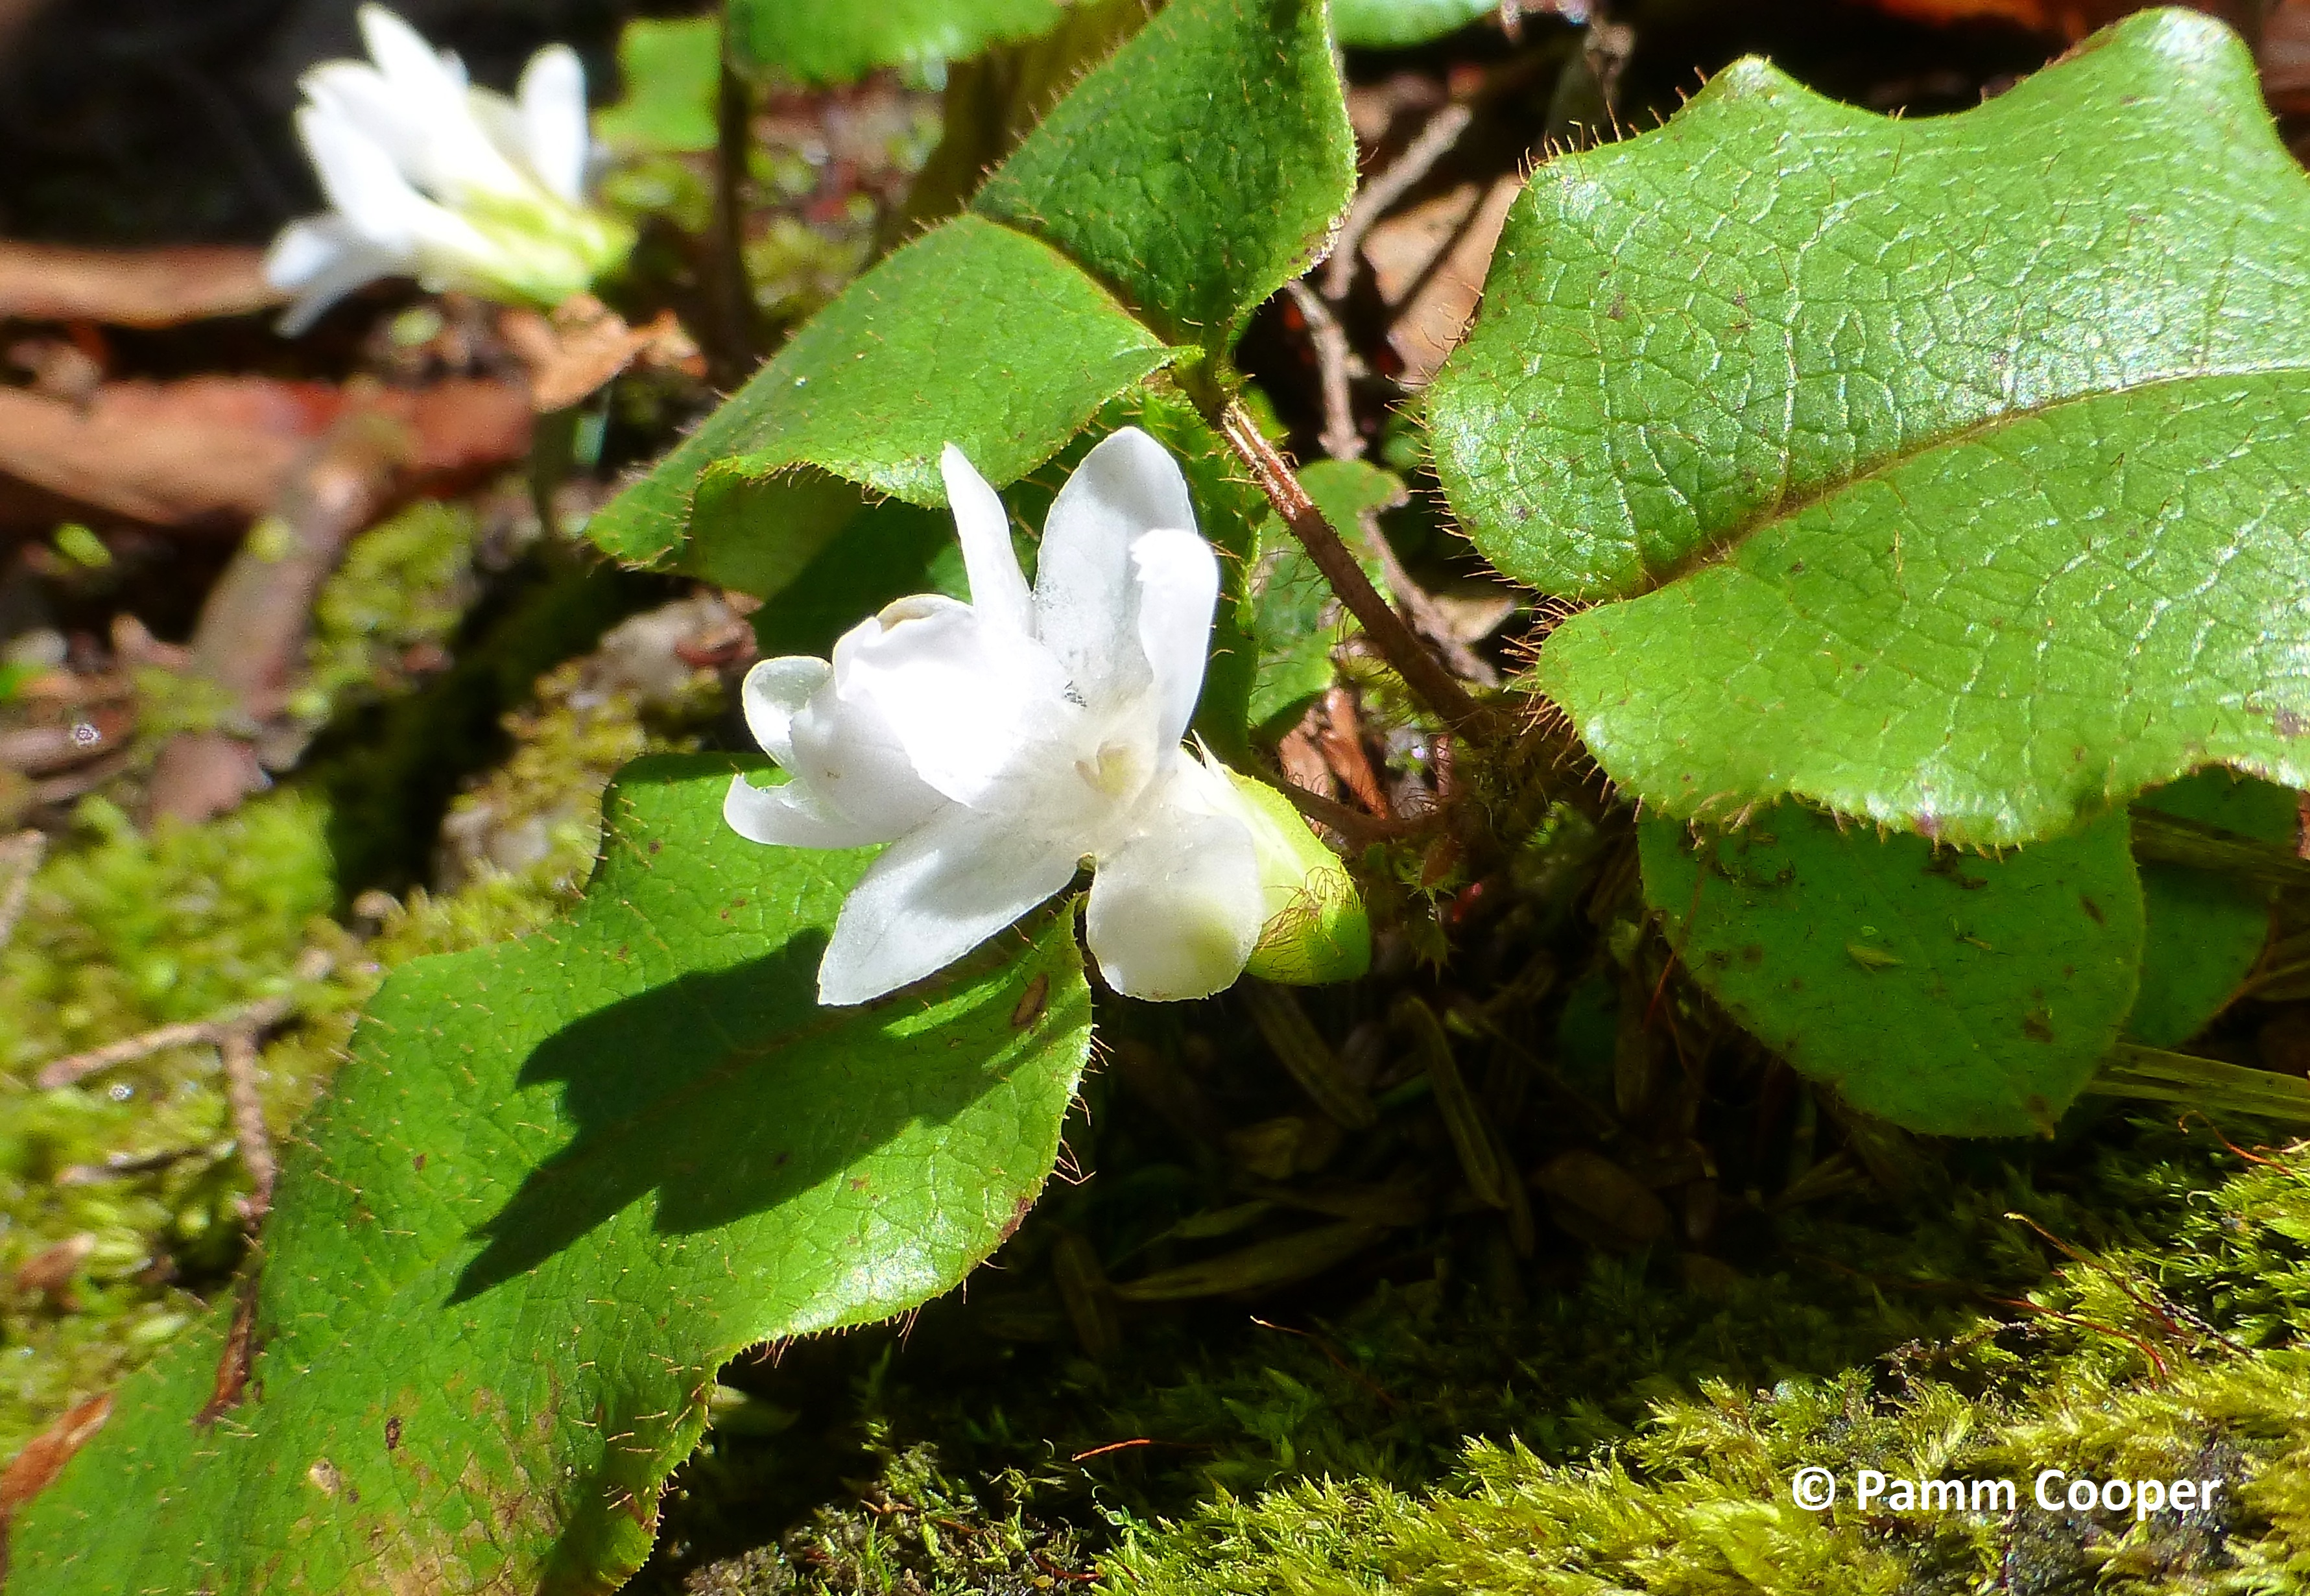 trailing arbutus showing hairs on stems and leaf edges April 2020